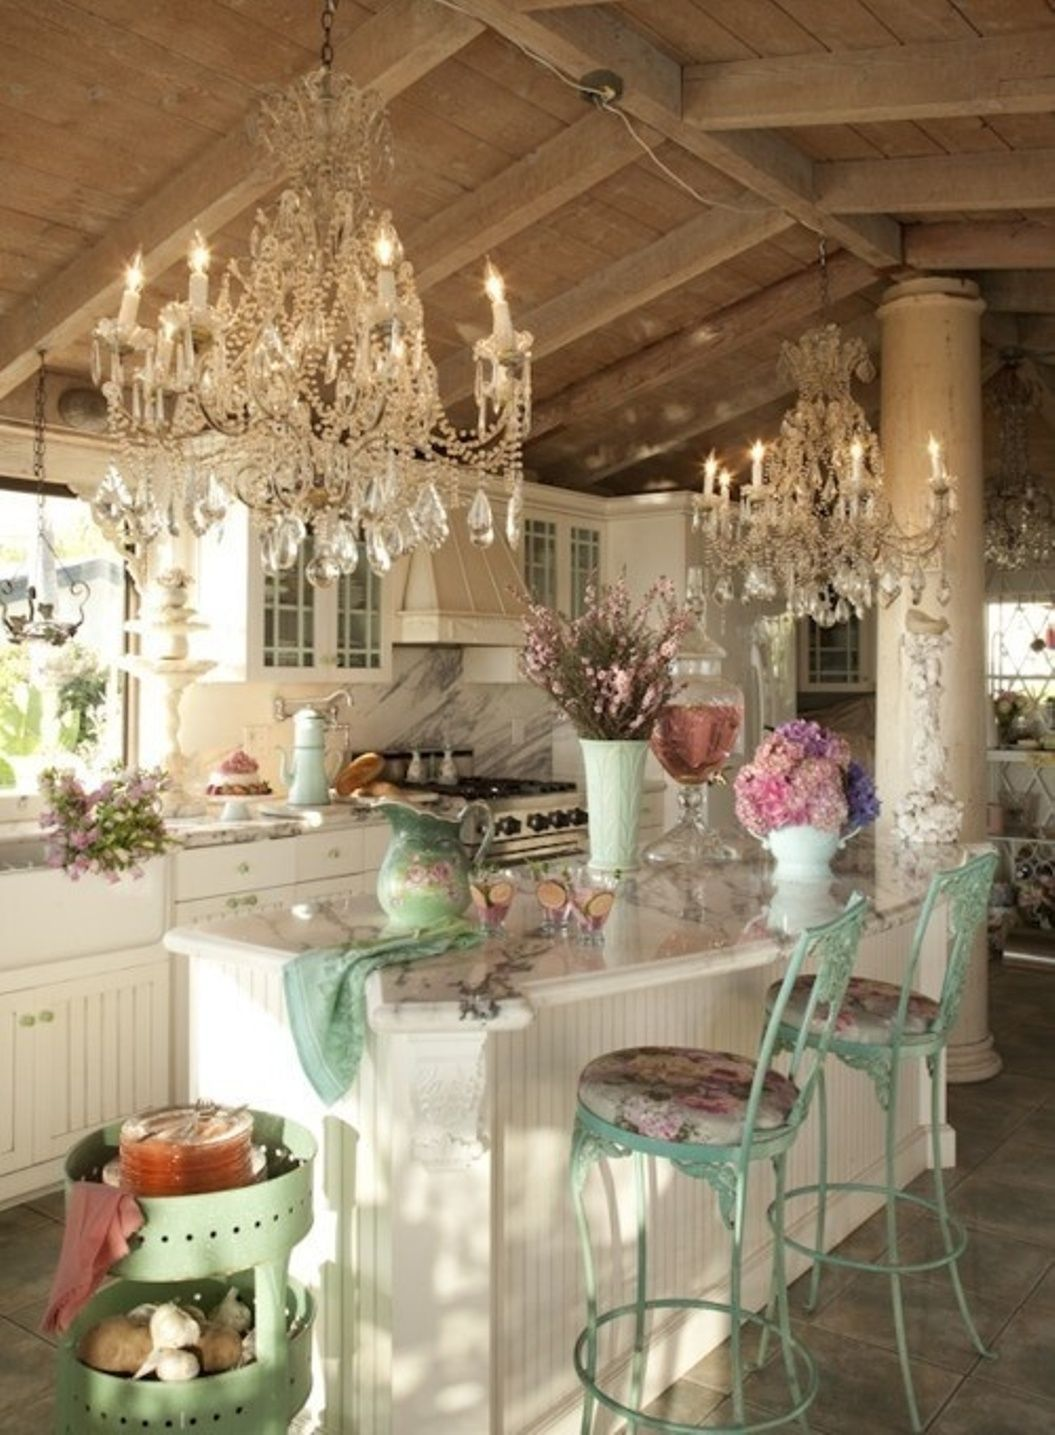 Shabby Chic Decorating 25 Charming Shabby Chic Style Kitchen Designs Shabby Kitchens